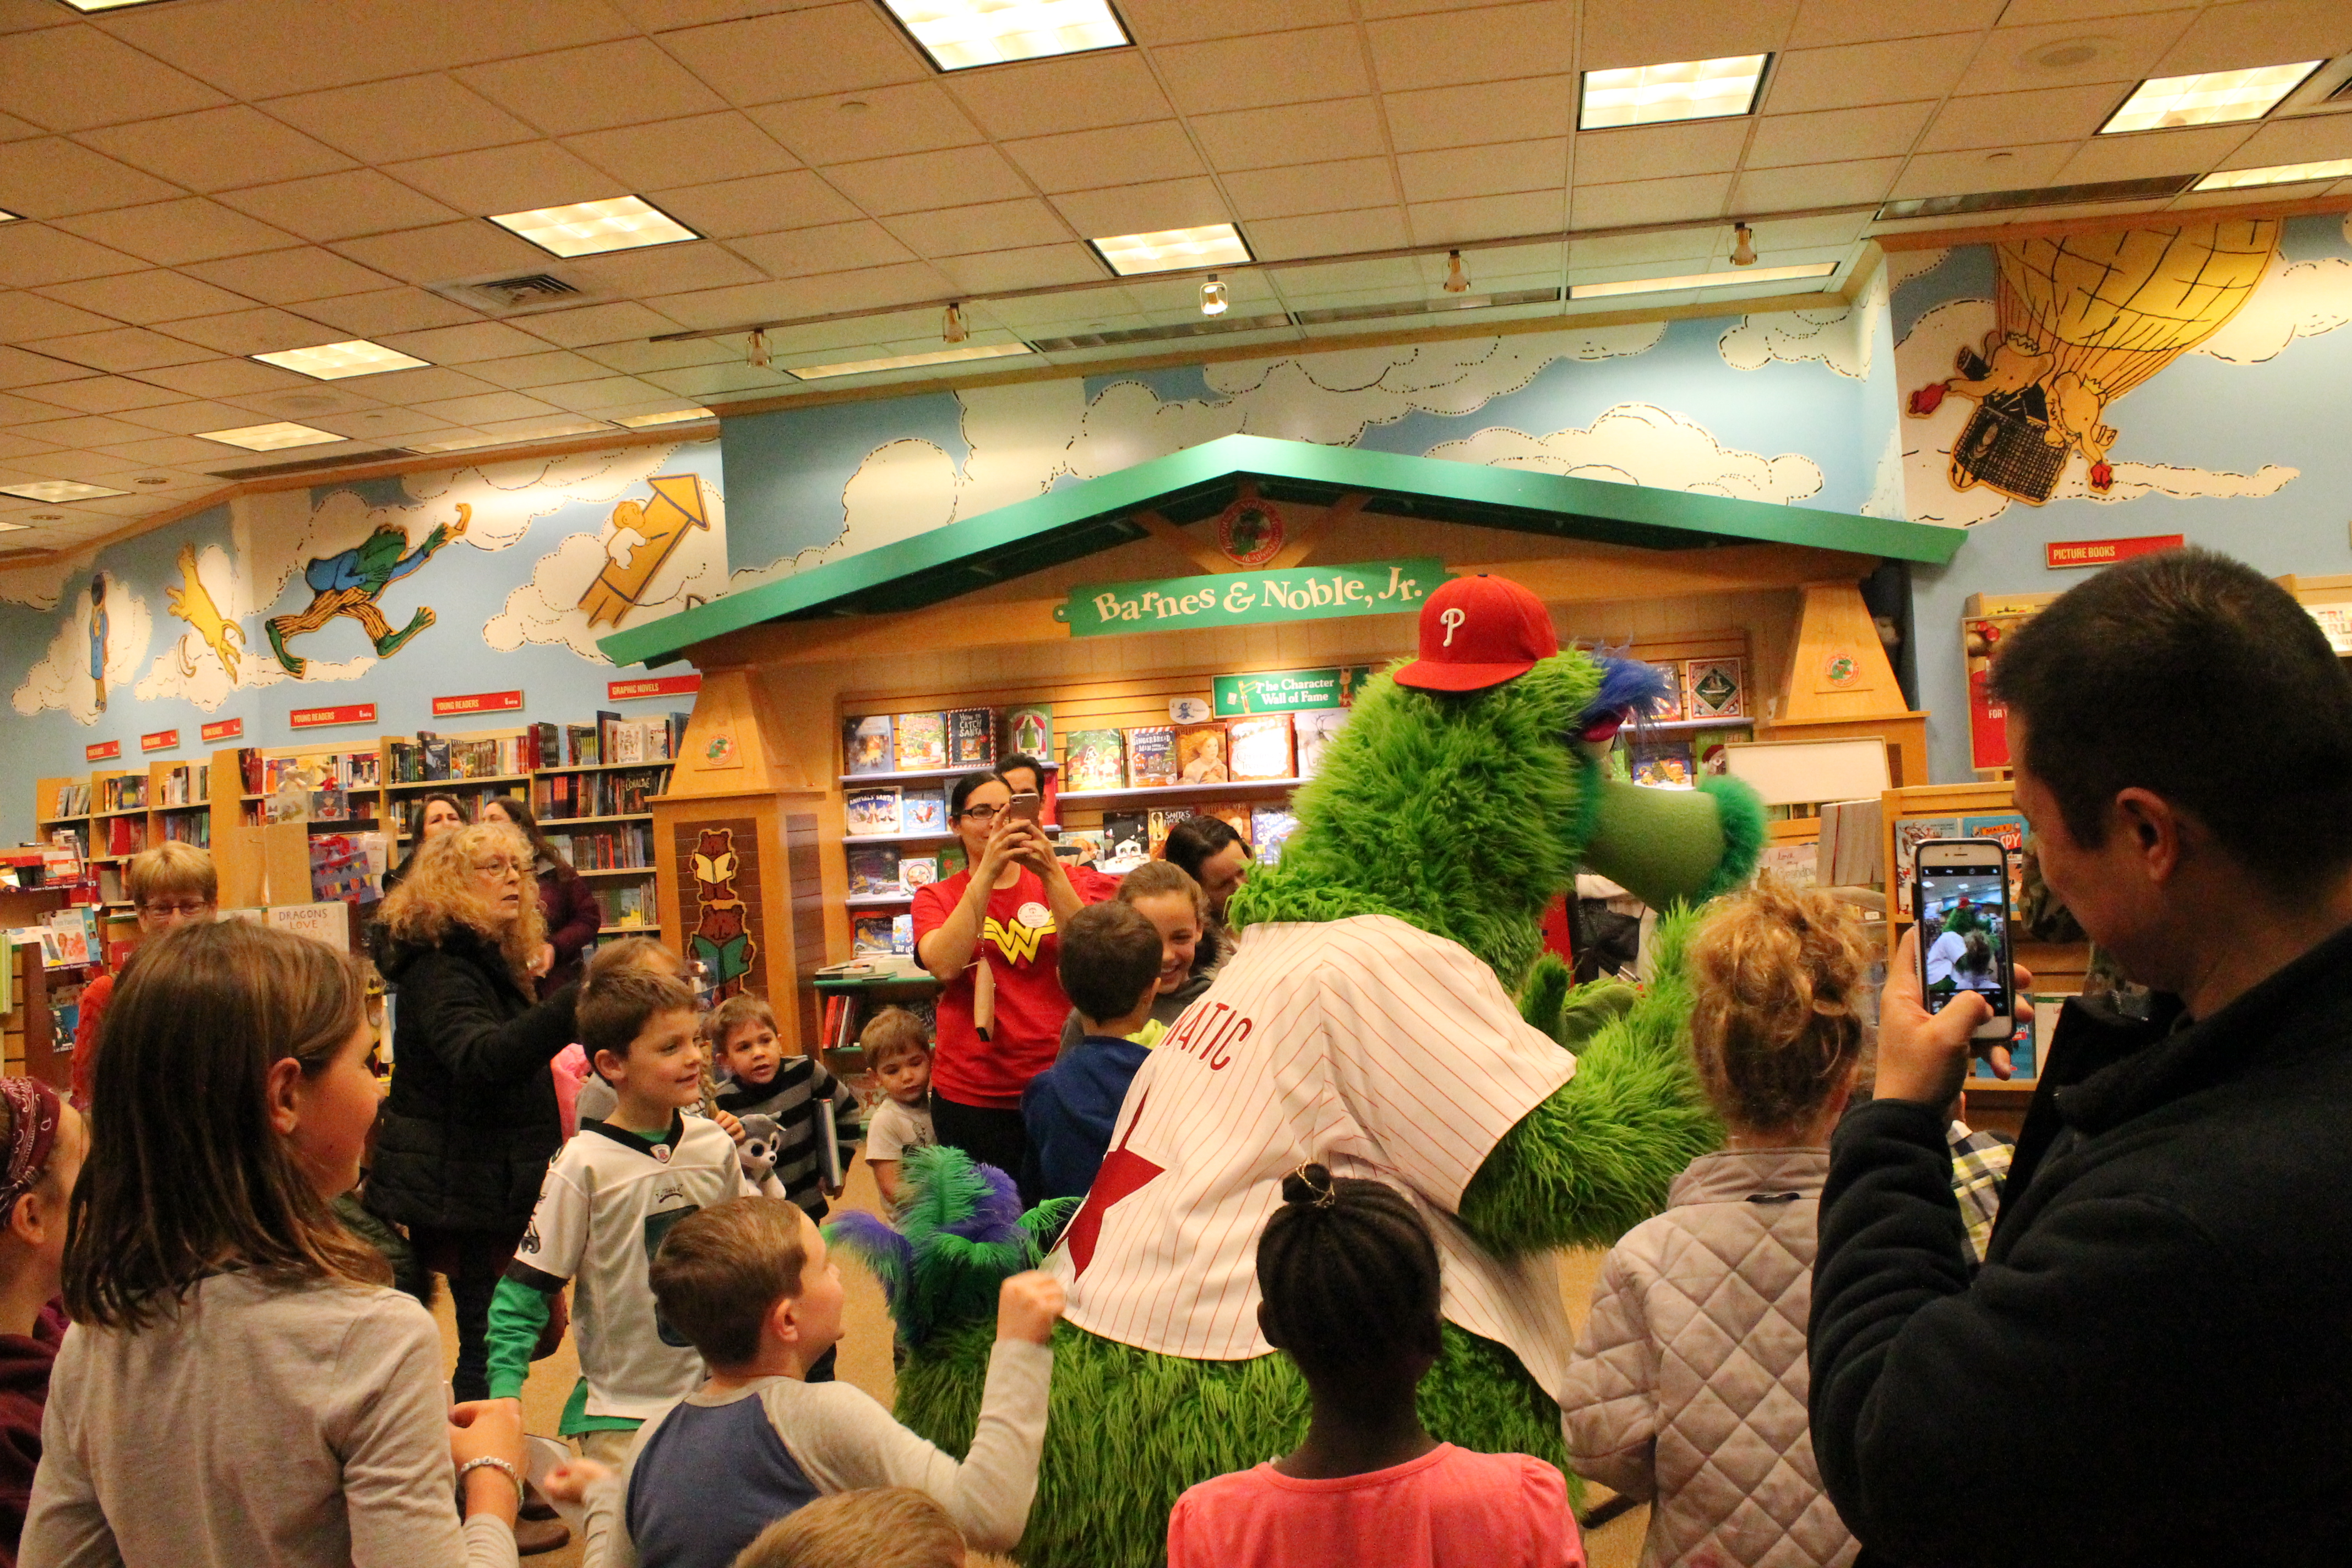 Barnes And Noble Summer Reading 2020.Highland Elementary School Barnes And Noble Night Highland